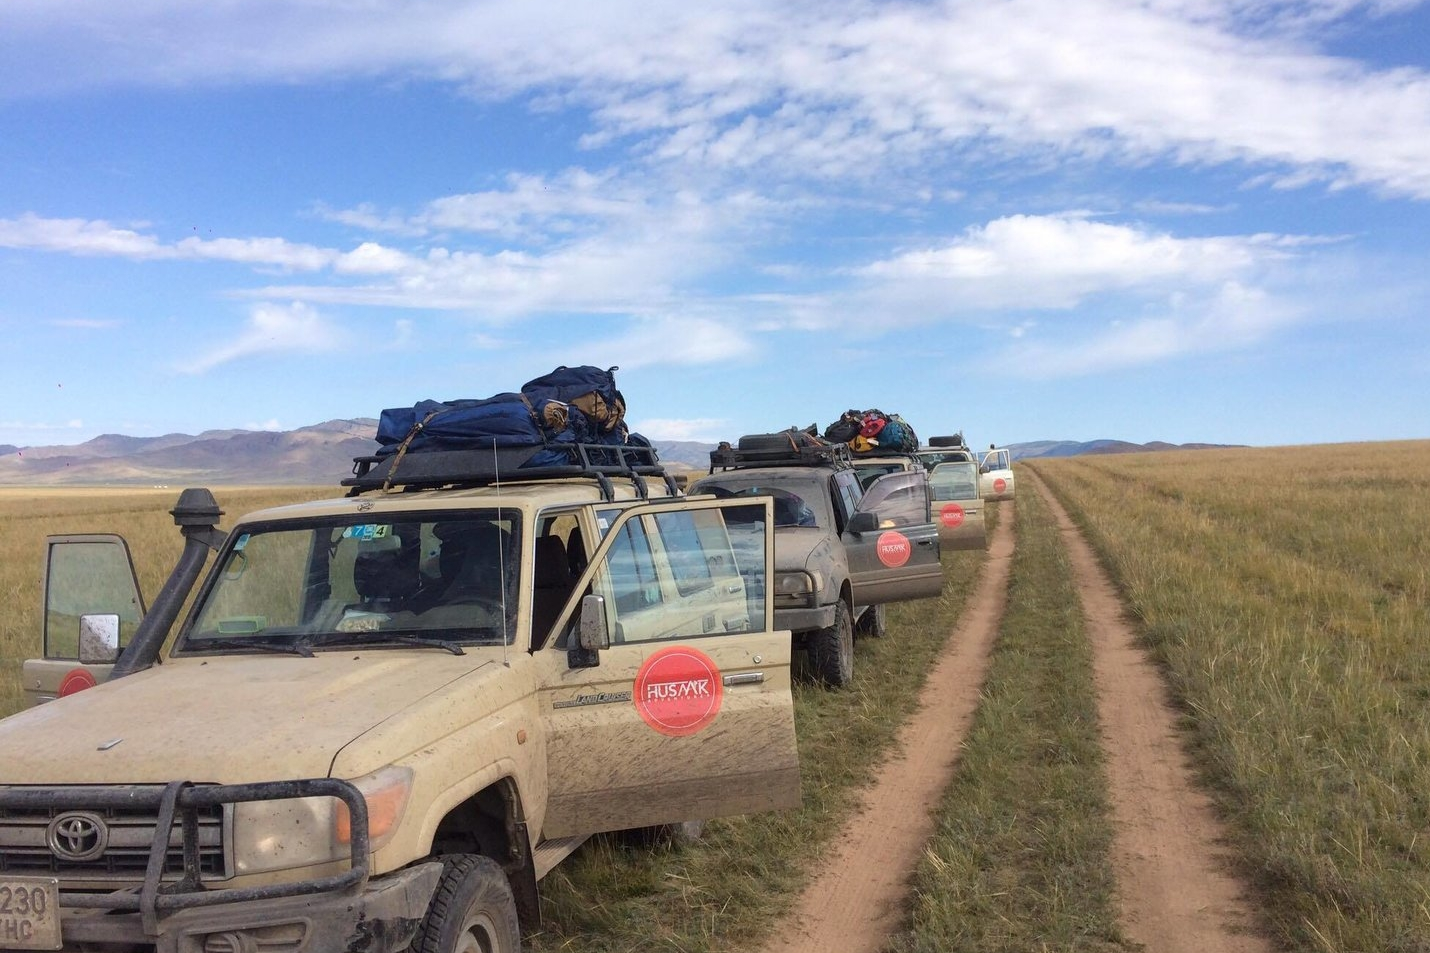 SUV/ 4WD Rentals - Explore Mongolia on your own with our fleet of Toyota Land Cruisers used both for expeditions and outback trips.Vehicle type:Toyota Land Cruiser 100, Toyota Land Cruiser 70 series and Nissan Patrol.